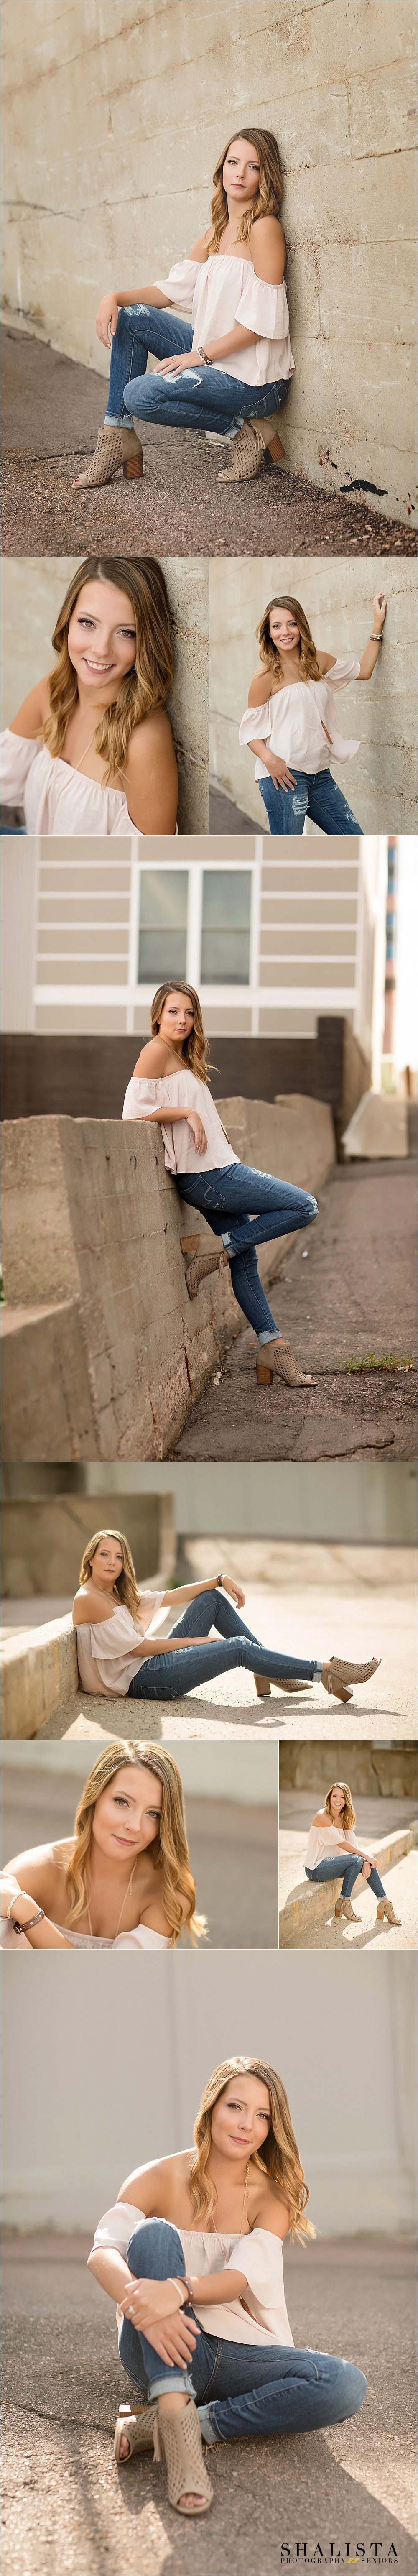 Sioux Falls Senior Portrait Photography